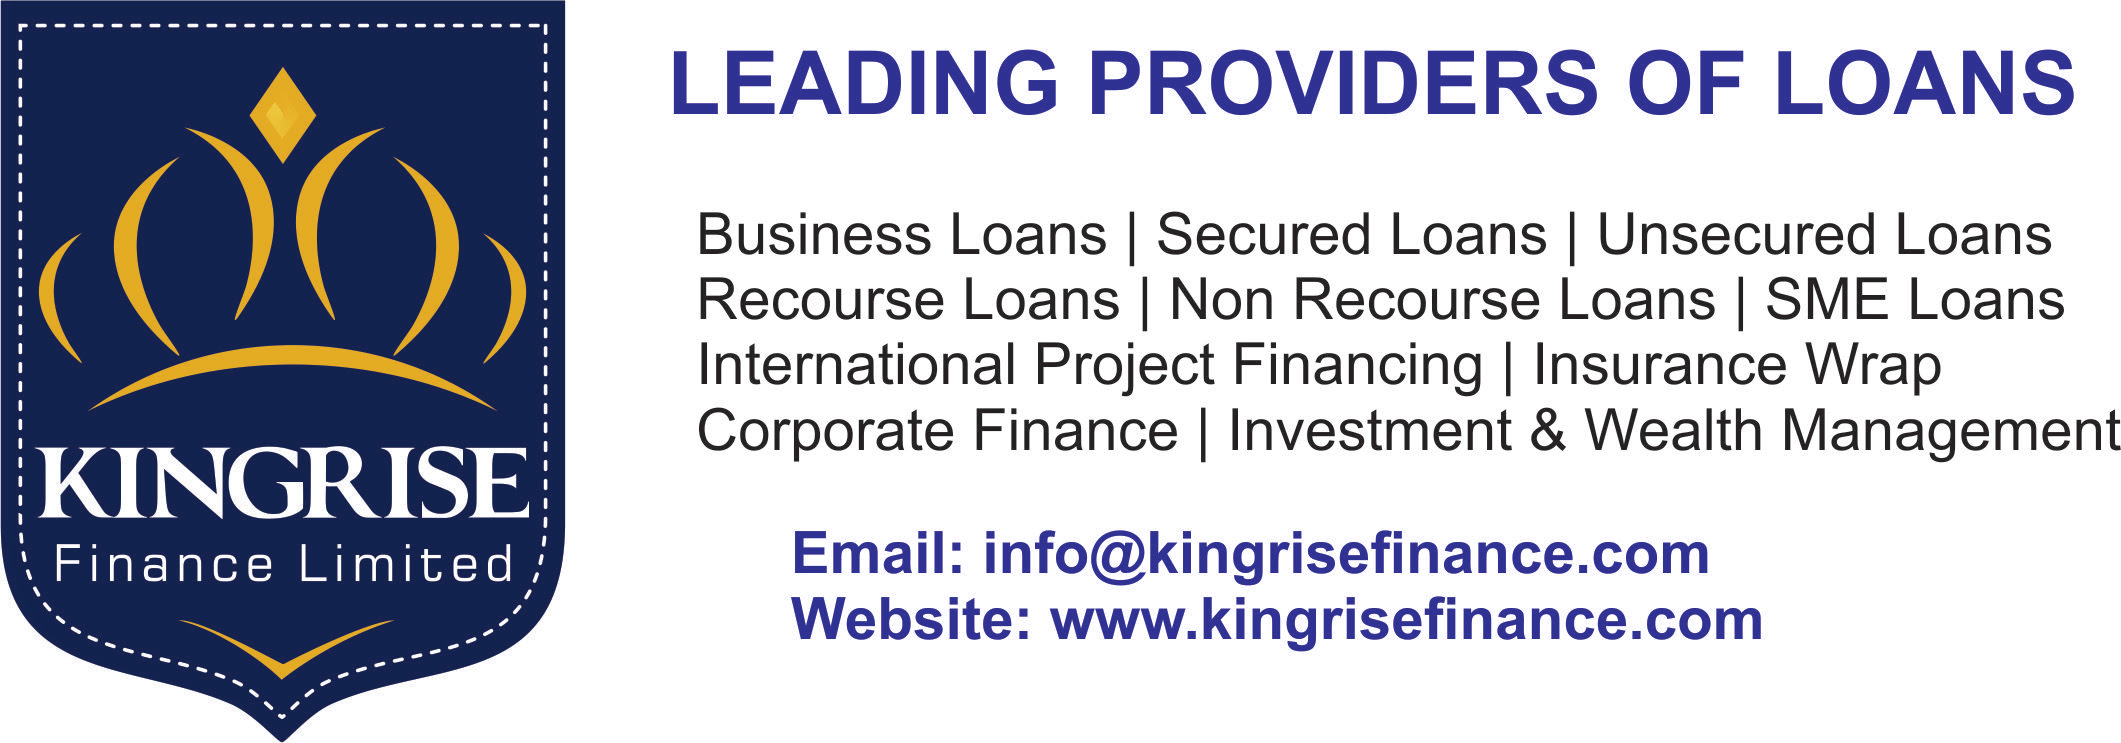 Business Loan Lender, Business Loan Lenders UK, Business Loan providers, Business Loan Companies, Business Loan Lenders USA, Business Loan Lenders Asia, Business Loan Lenders in Europe